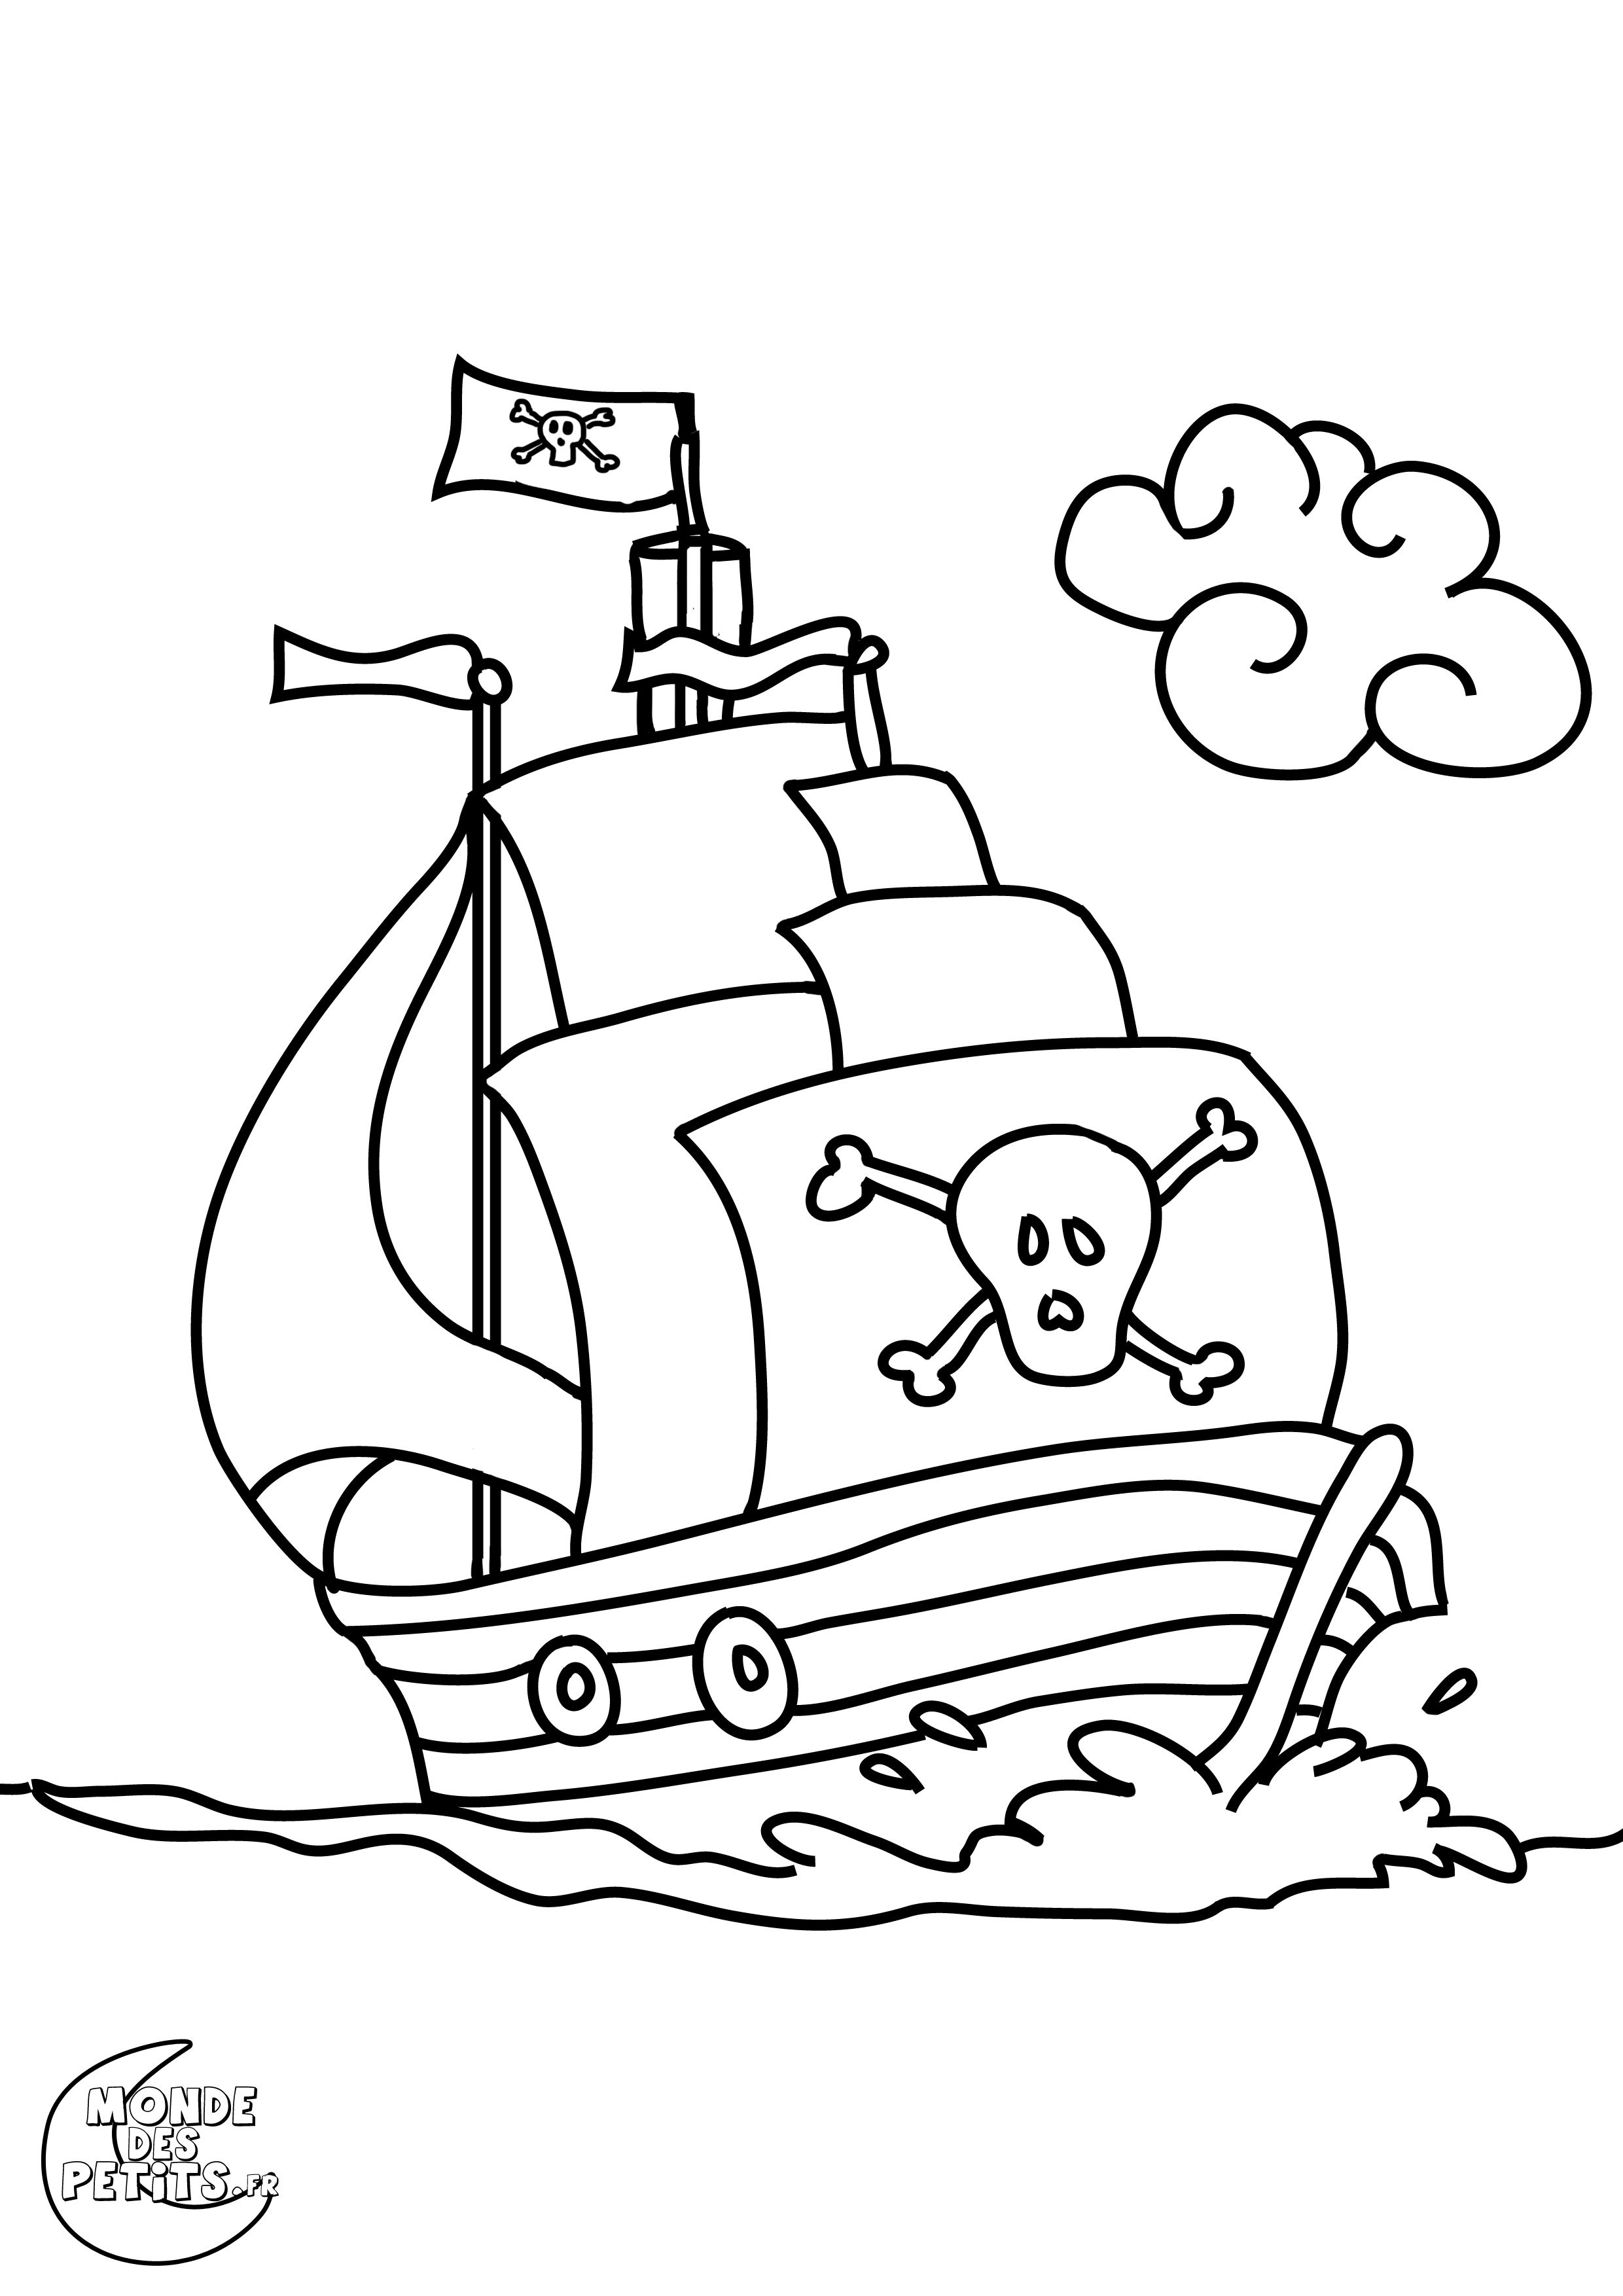 Coloriage pirate colorier dessin imprimer - Coloriage jack le pirate ...